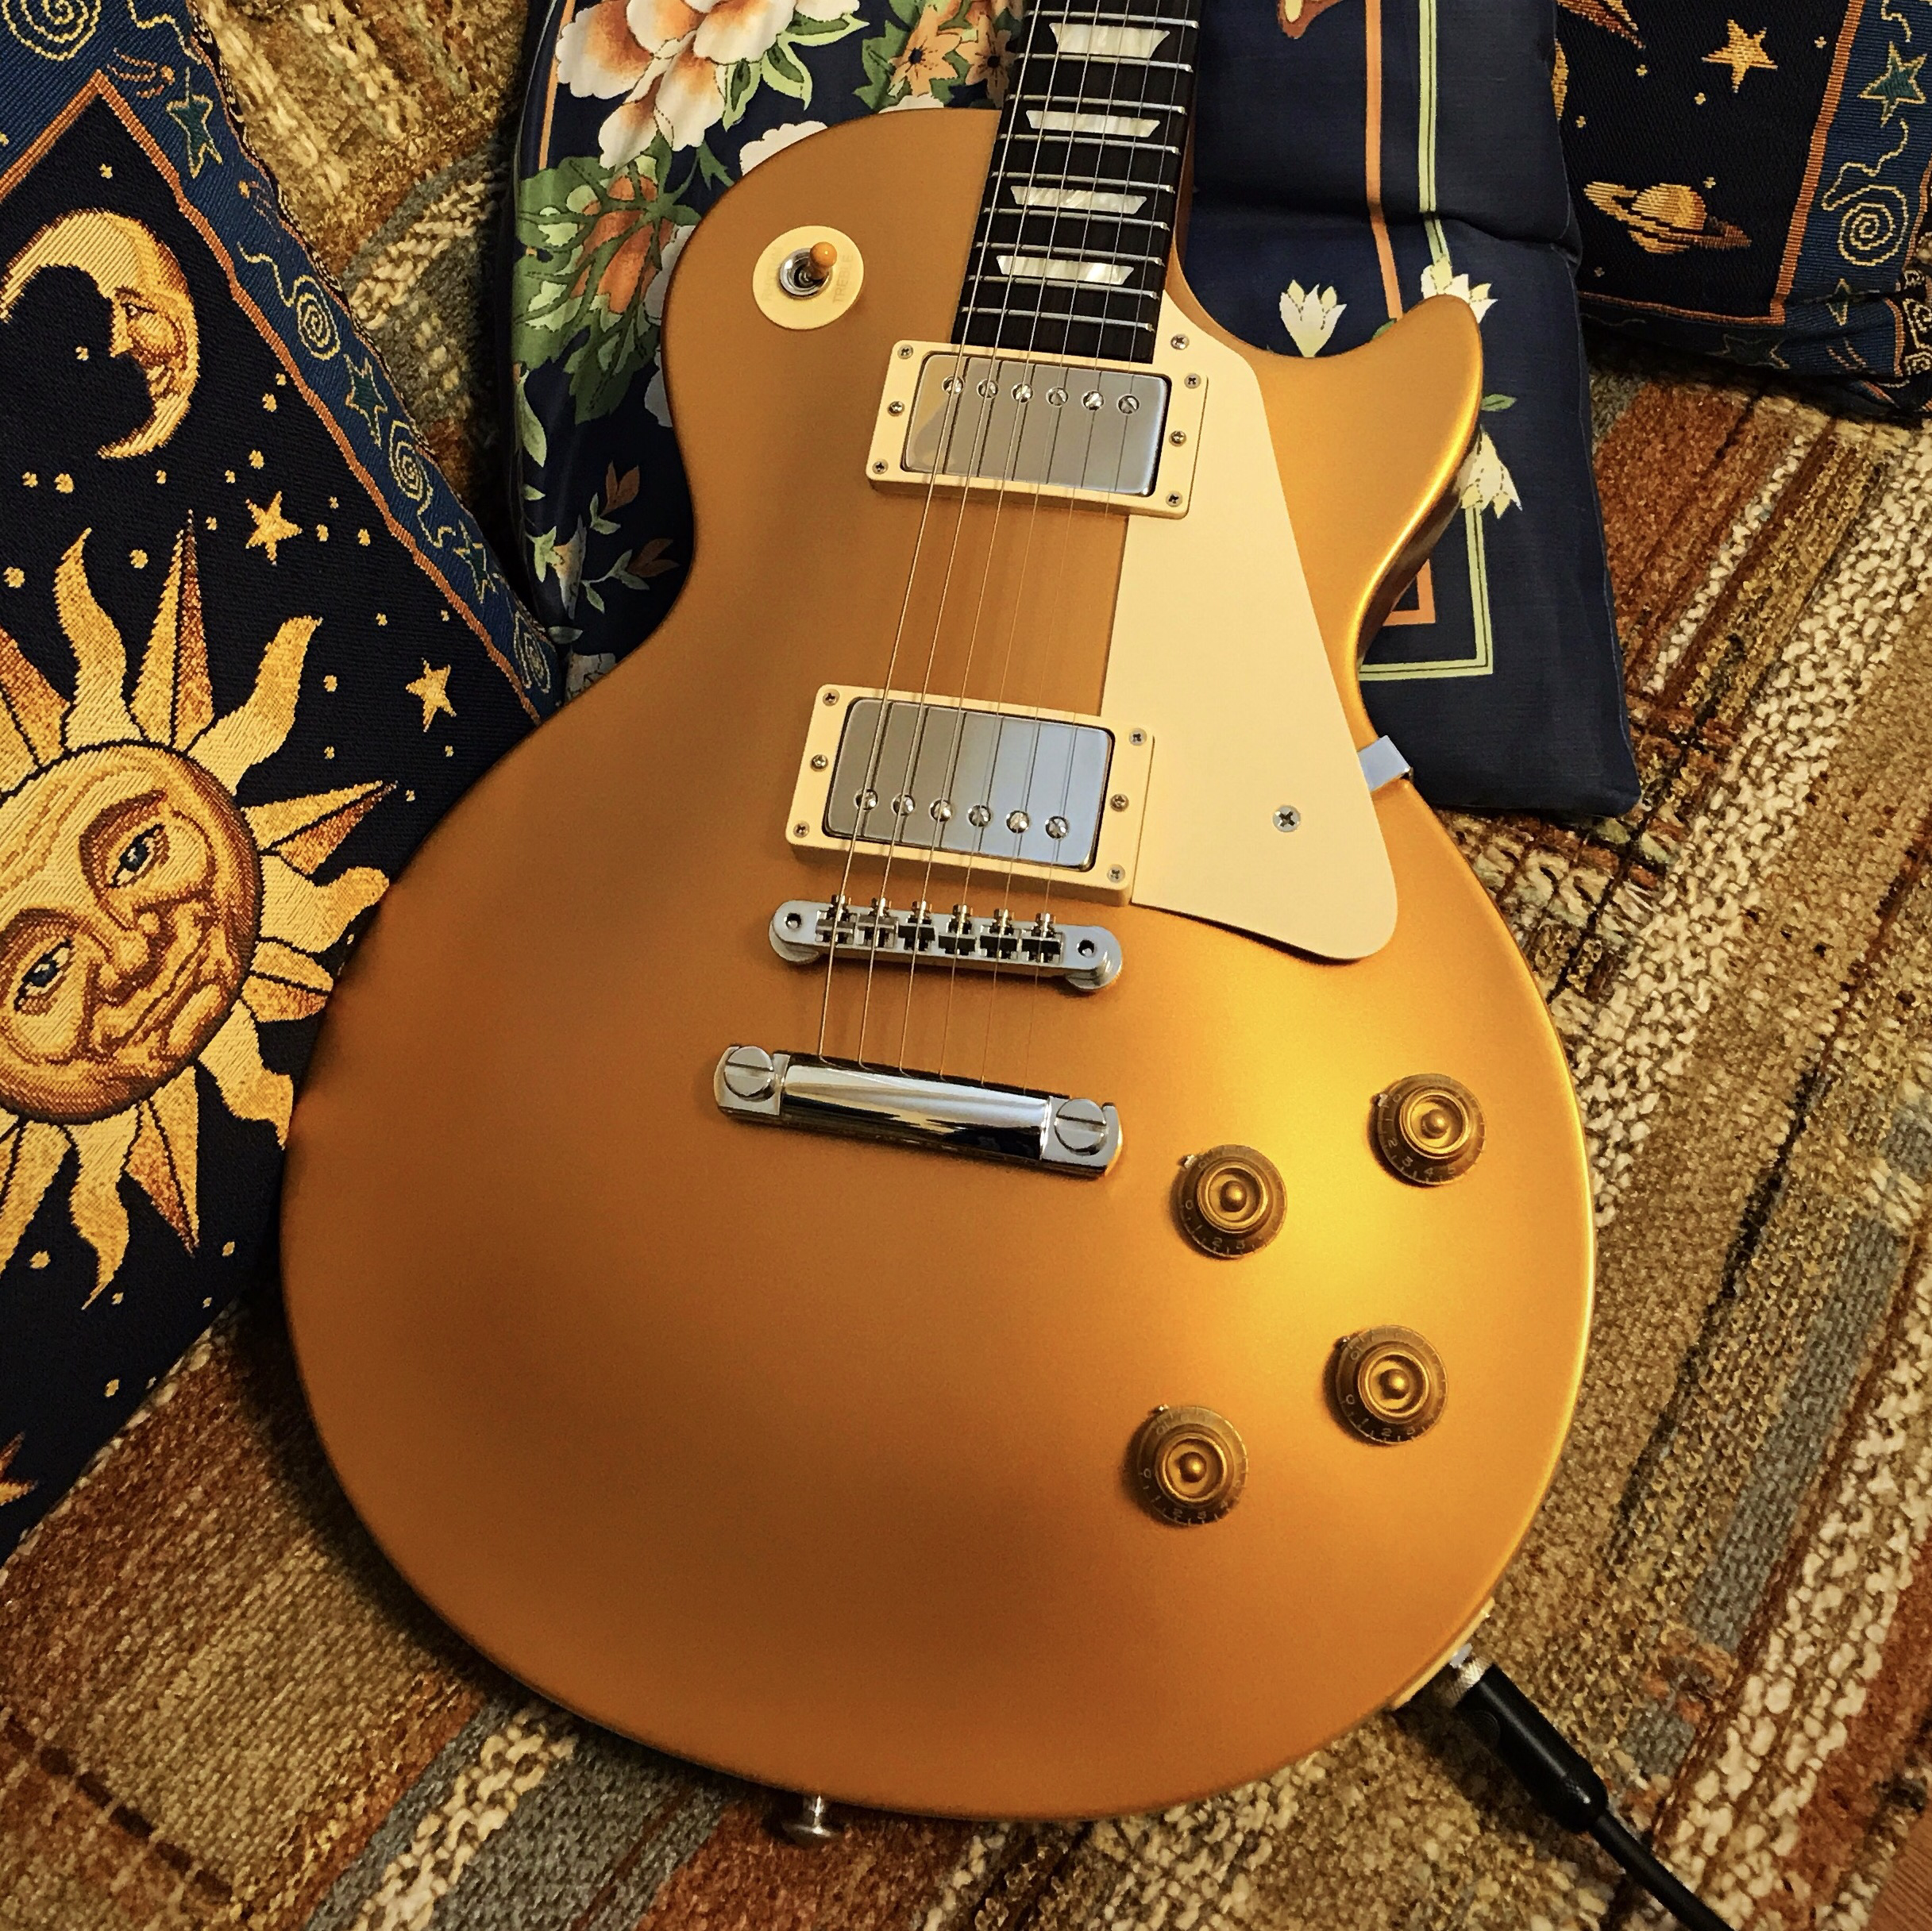 ff125ba3e60bfeaa61d9de25359adf22 my 2017 gibson les paul goldtop tribute upgraded to bare knuckle epiphone les paul wiring harness upgrade at n-0.co